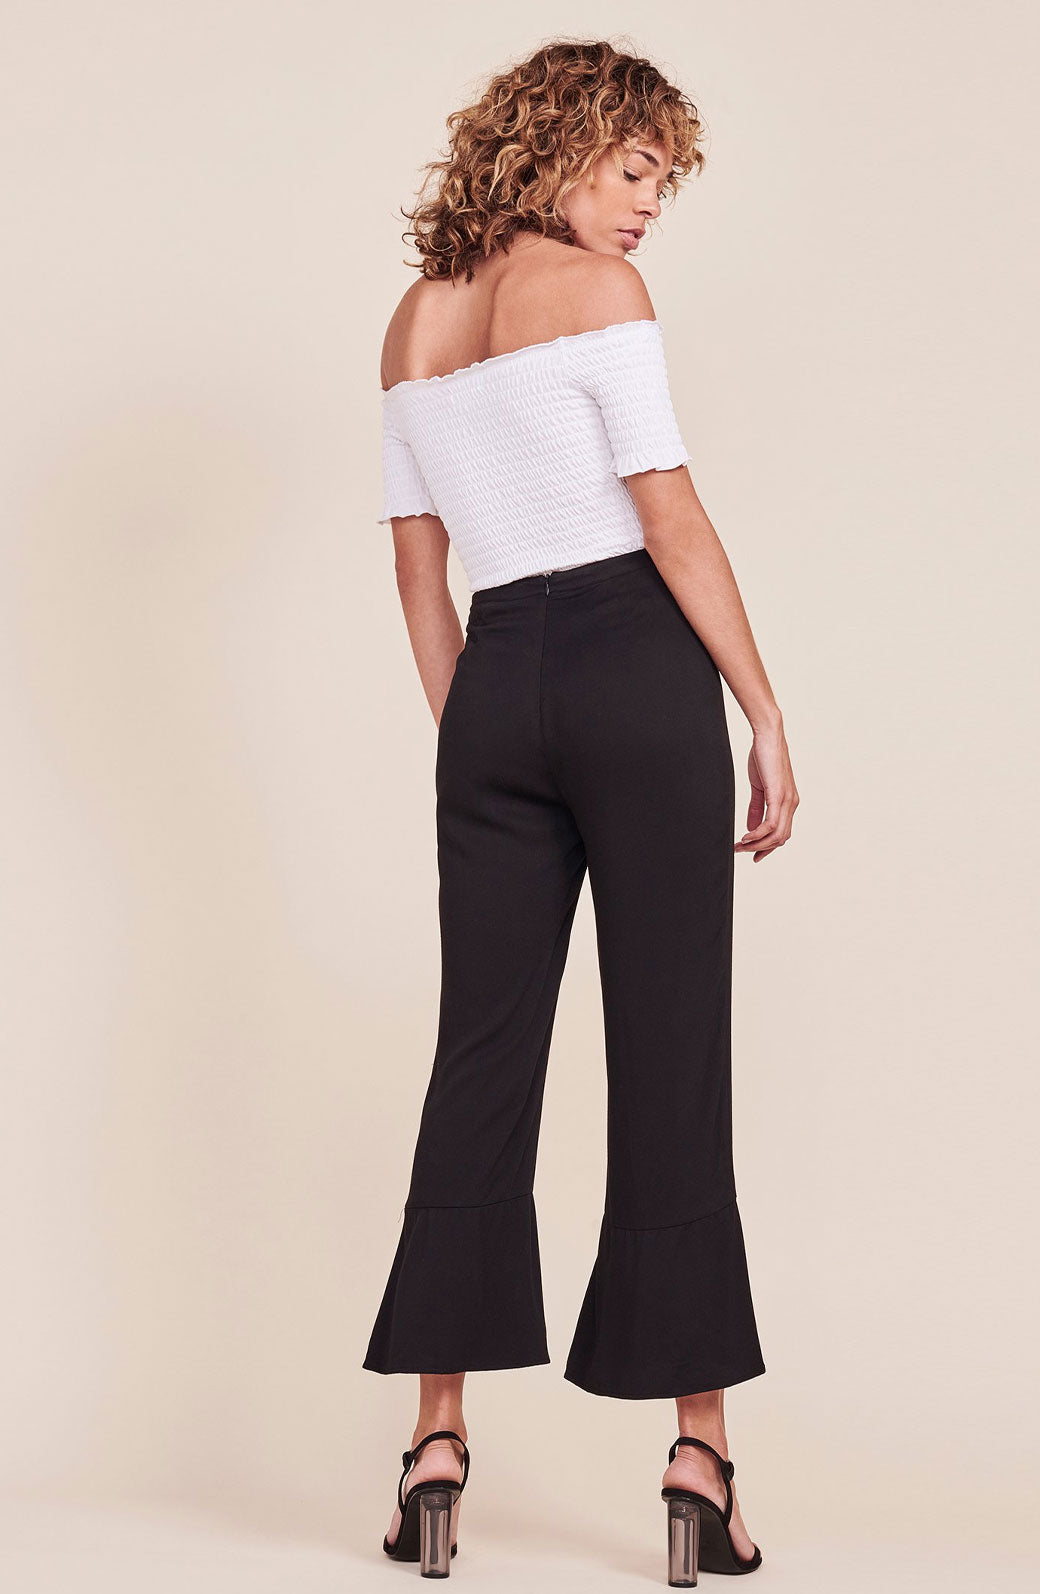 Kane Ruffle Bottom Pants